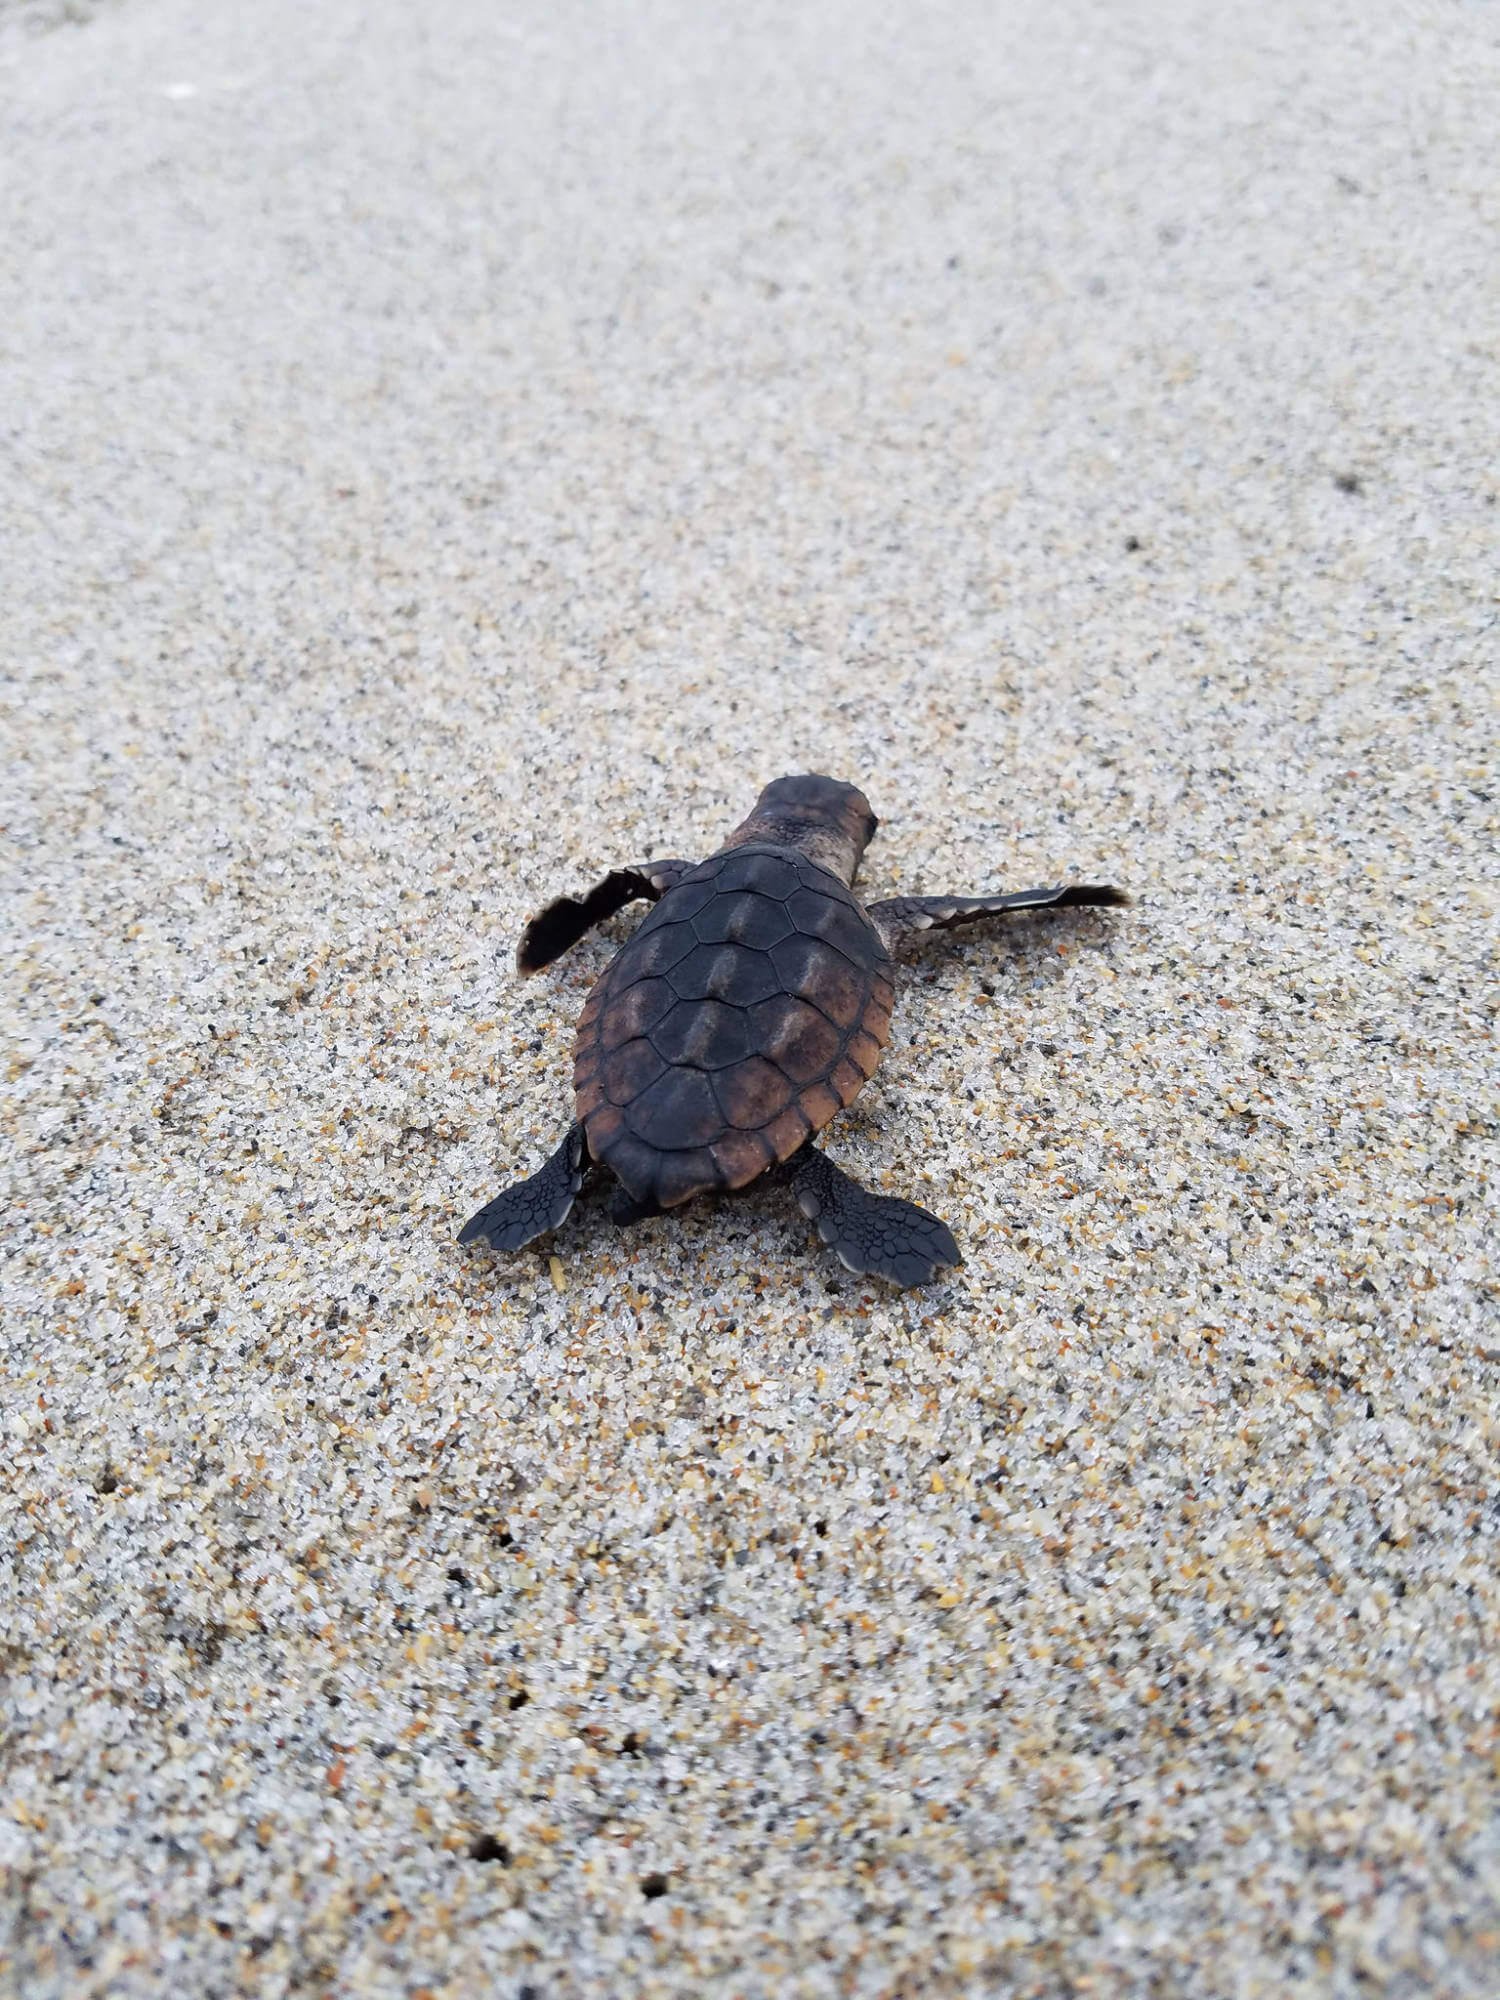 Baby sea turtles are born perfectly formed and able to swim. They are programmed to head for the sea, where they seek food and refuge in seaweed as they grow to maturity. Photo by Florida Fish & Wildlife | Must Do Visitor Guides, MustDo.com